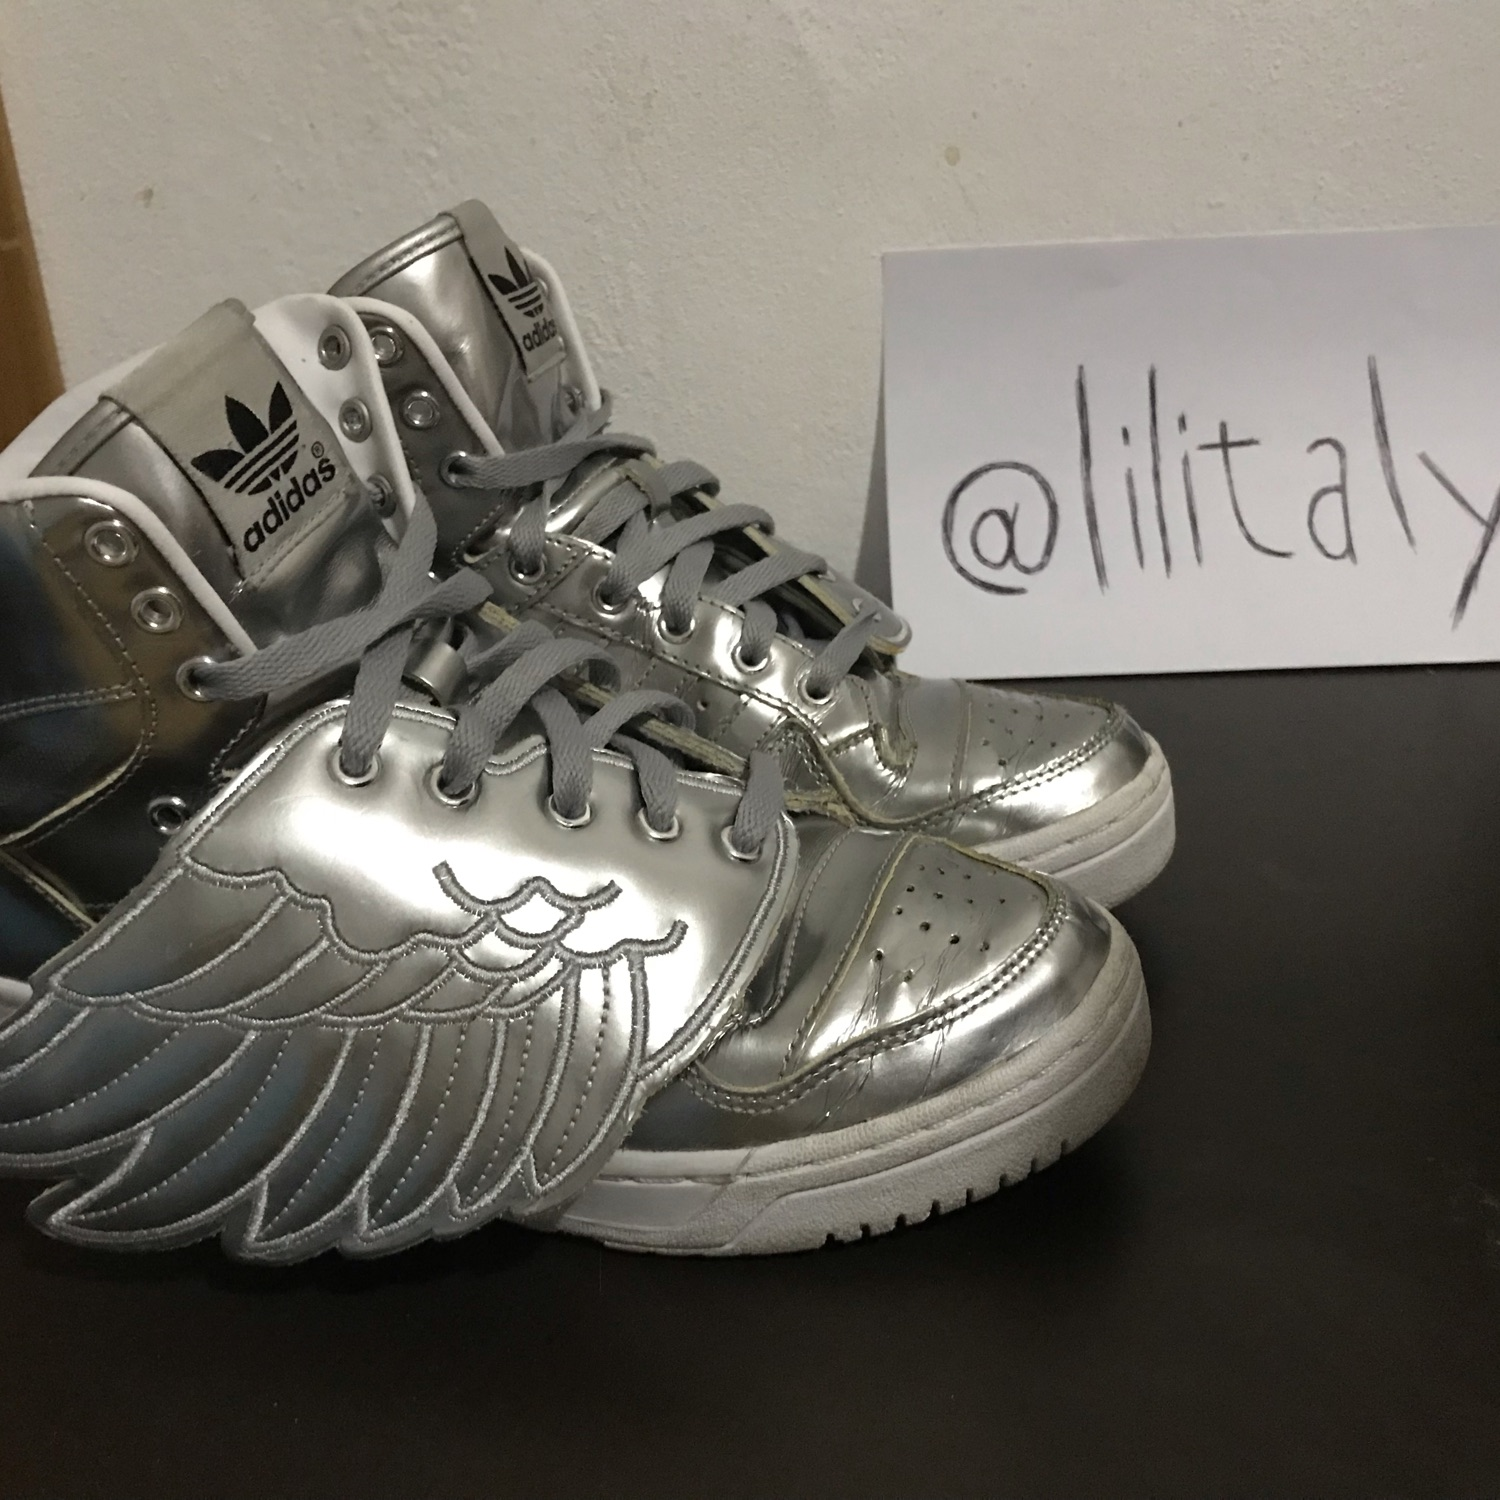 Preowned Jeremy Scott X Adidas Africa edition shoe Size 11 US